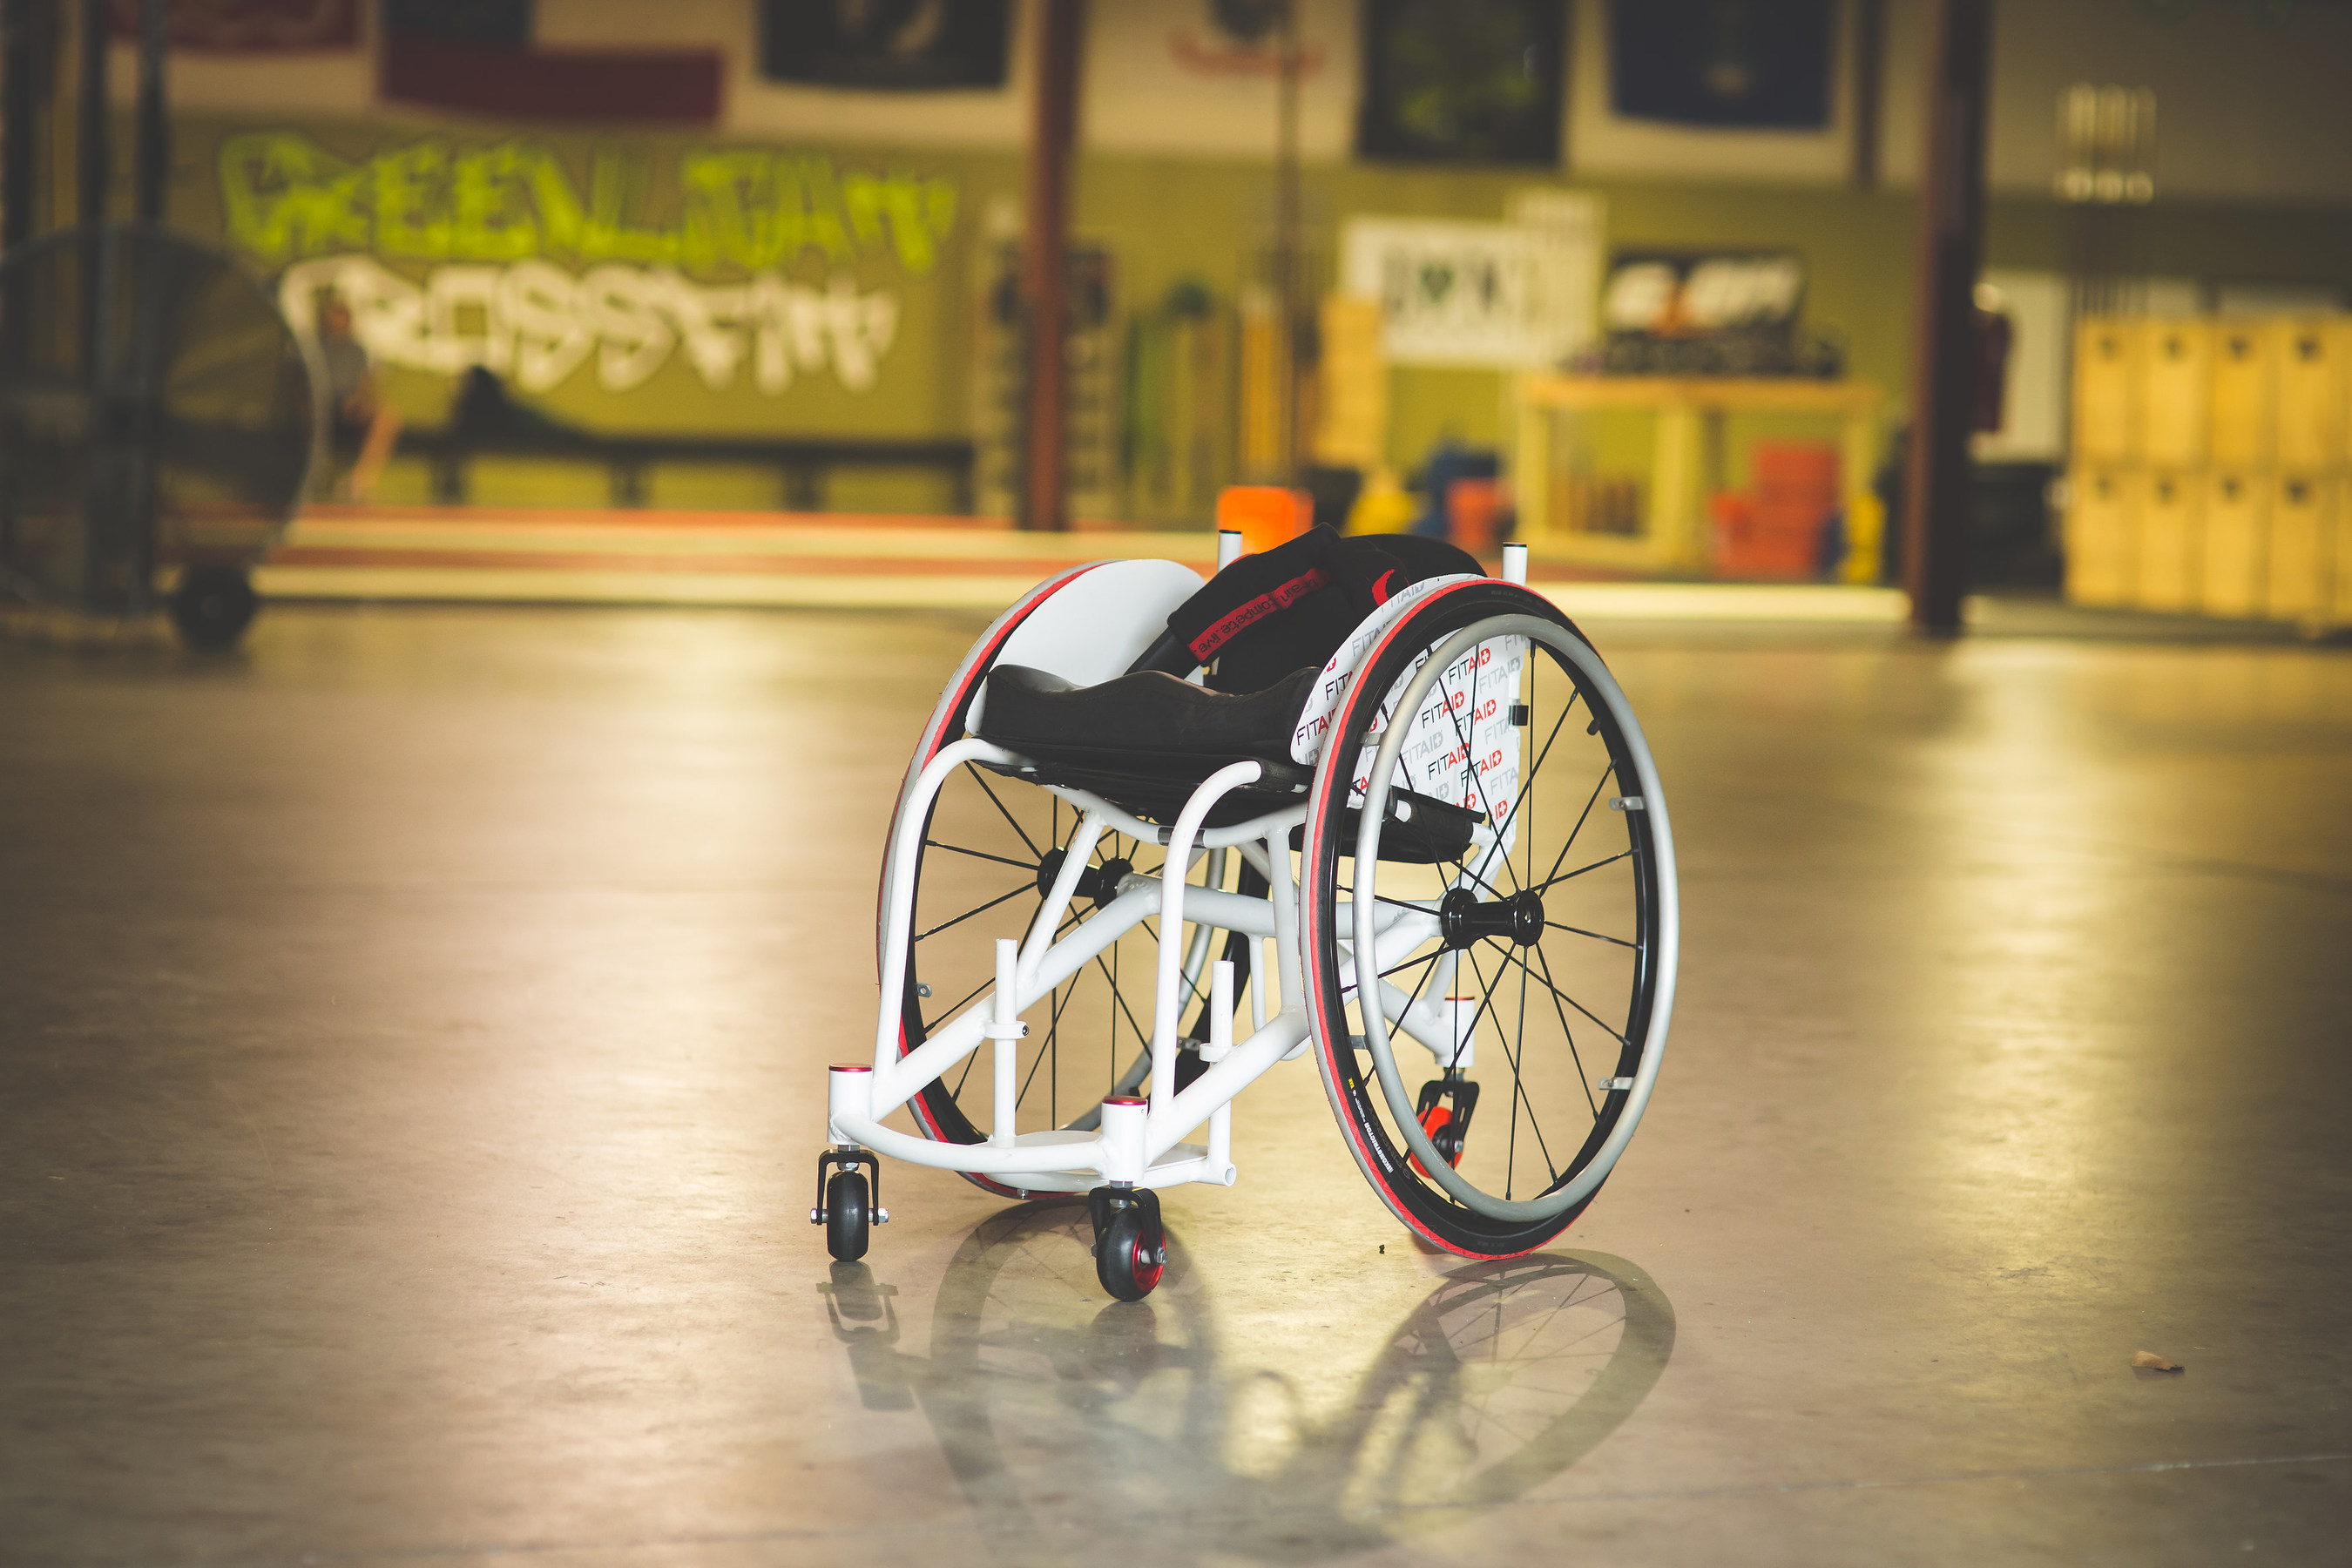 Beverage Company & Non-Profit Team Up to Provide Top Adaptive Athlete With First Ever Custom